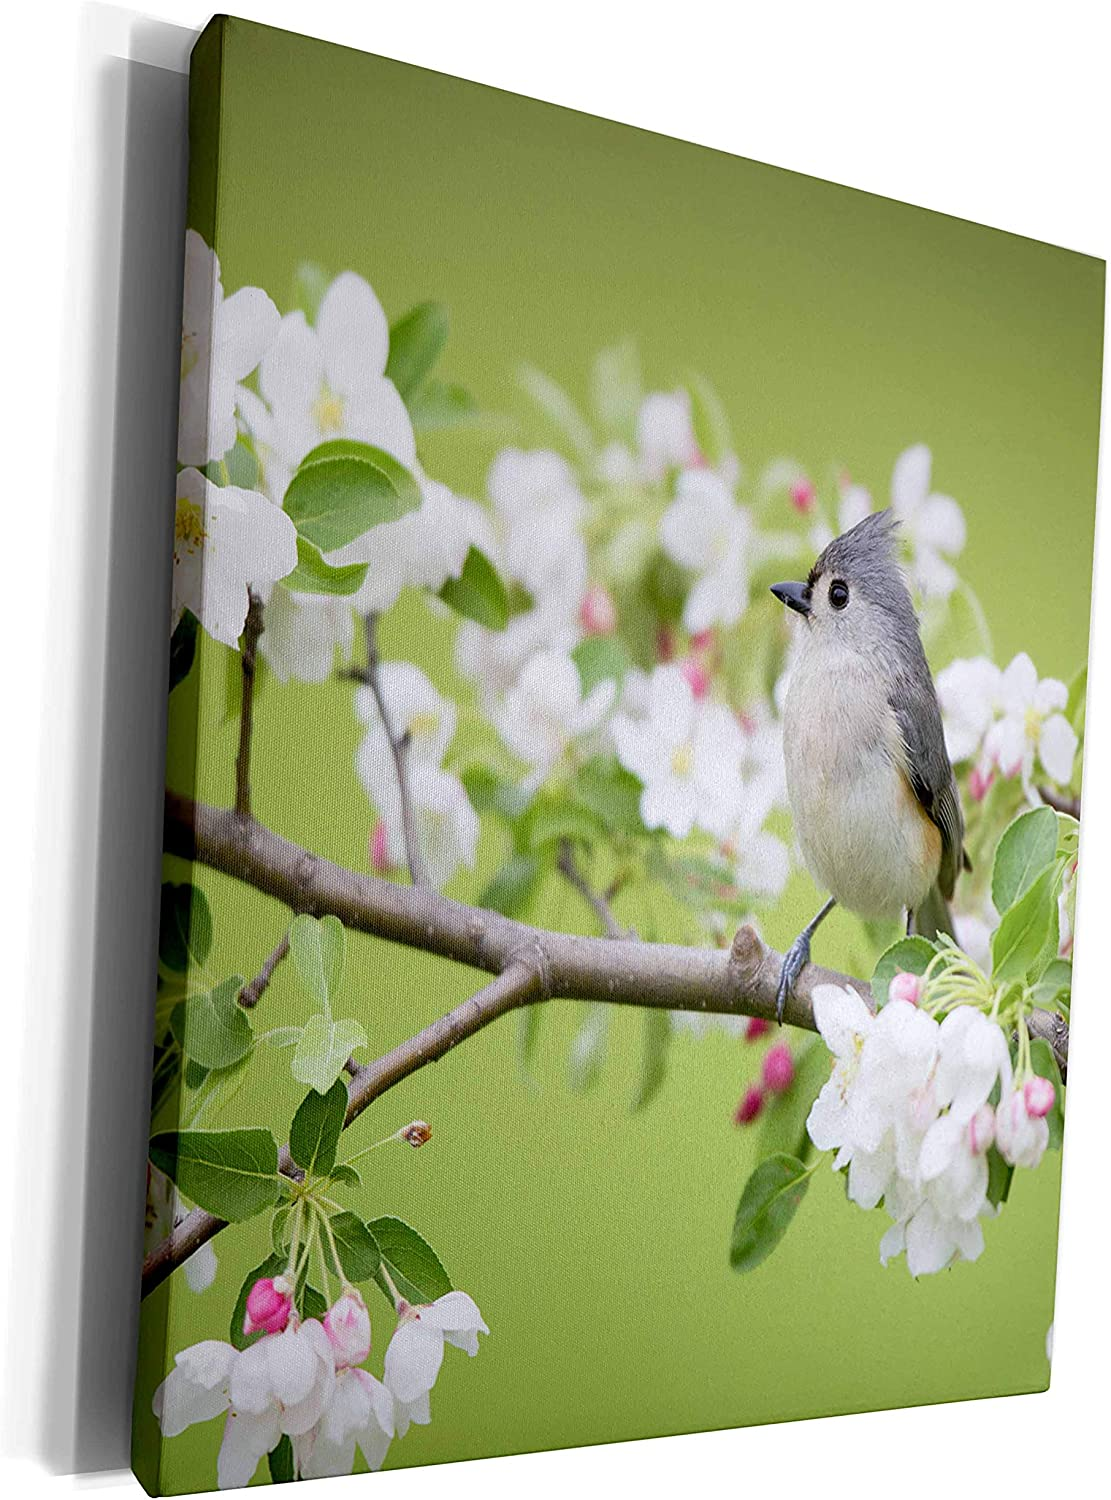 3dRose Danita Delimont - Birds - Tufted Titmouse in Crabapple tree in spring. Marion, Illinois, USA. - Museum Grade Canvas Wrap (cw_209269_1)